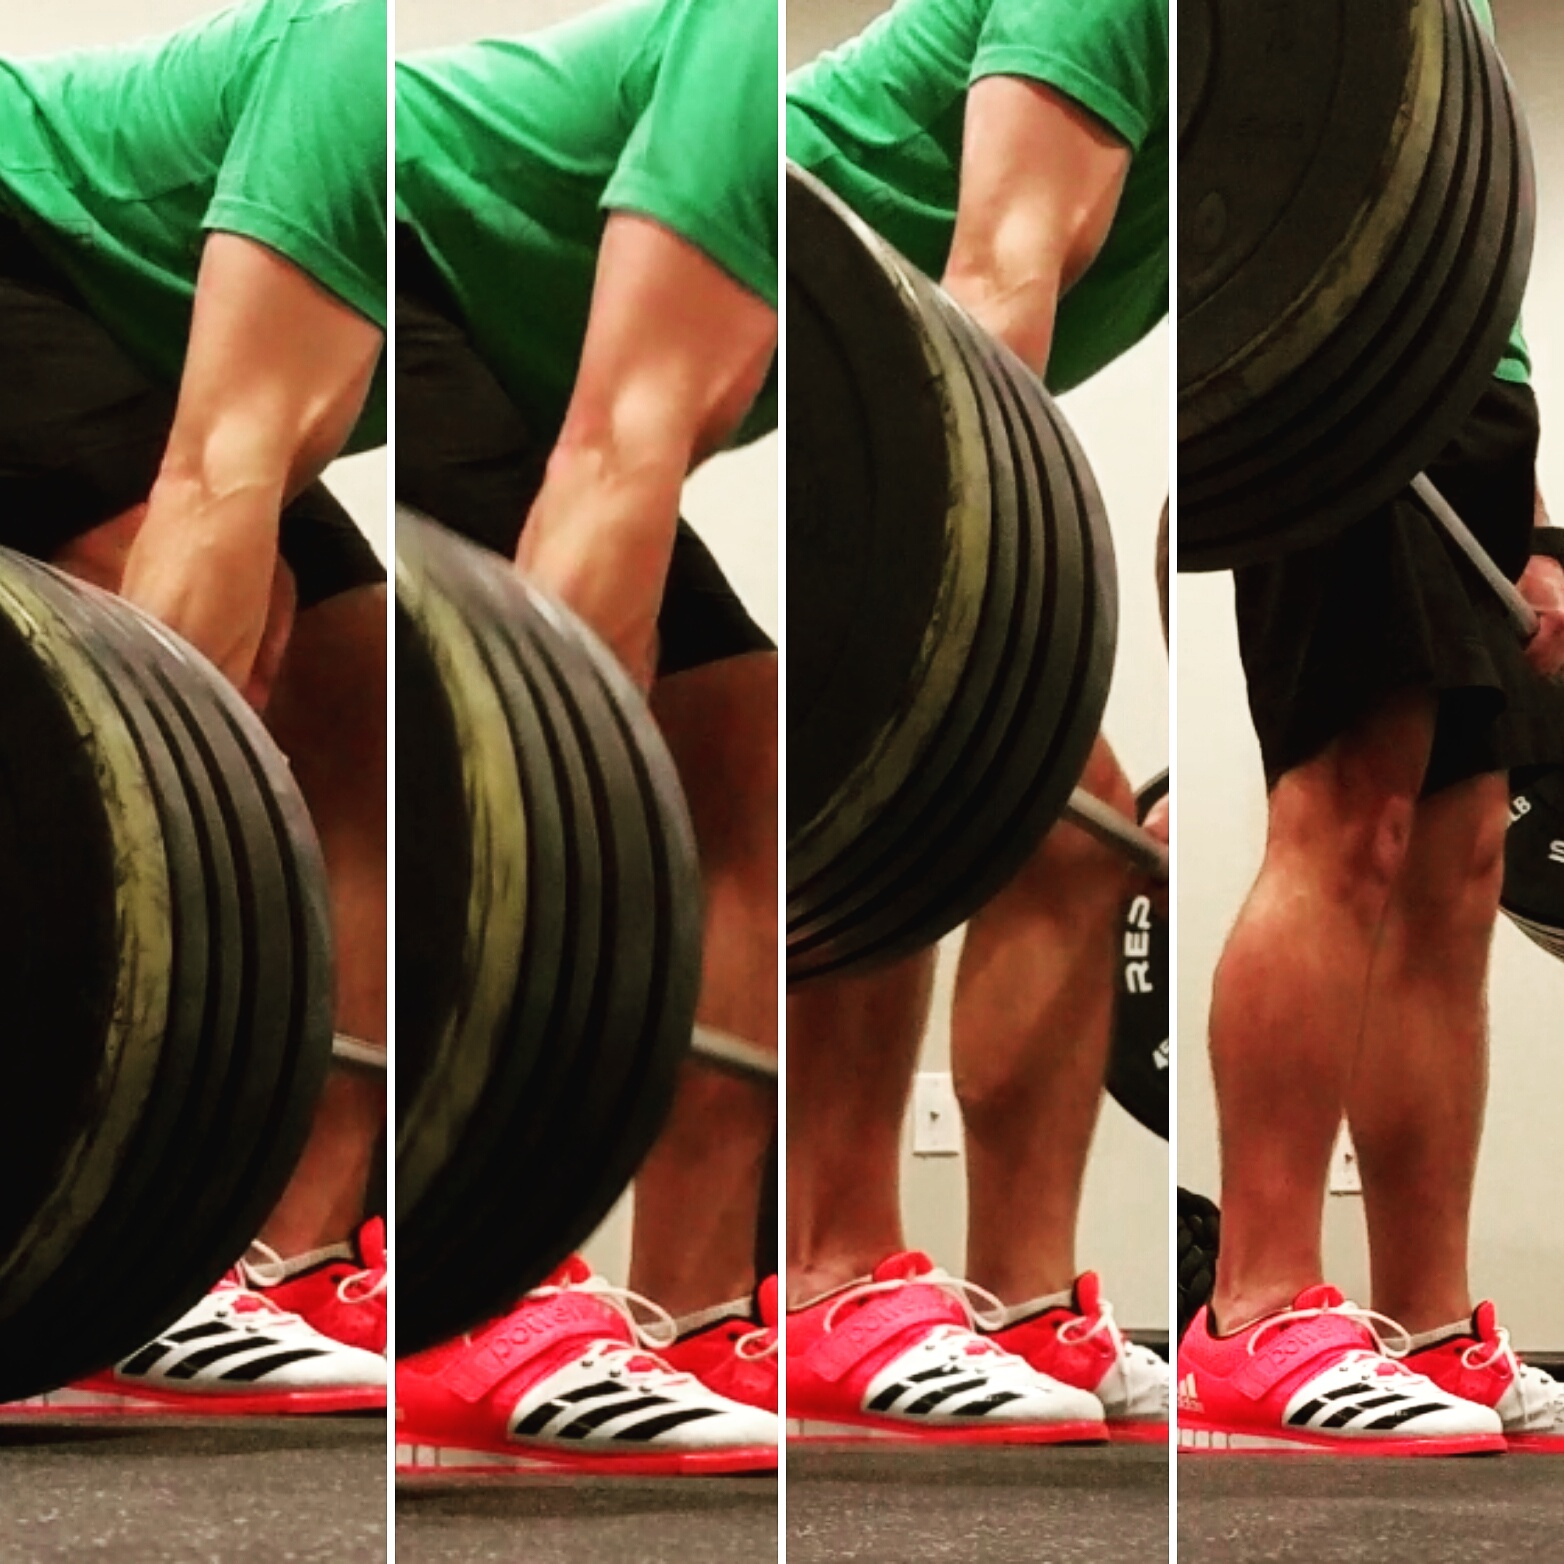 Deadlifts are a nice way to build up those hamstrings.